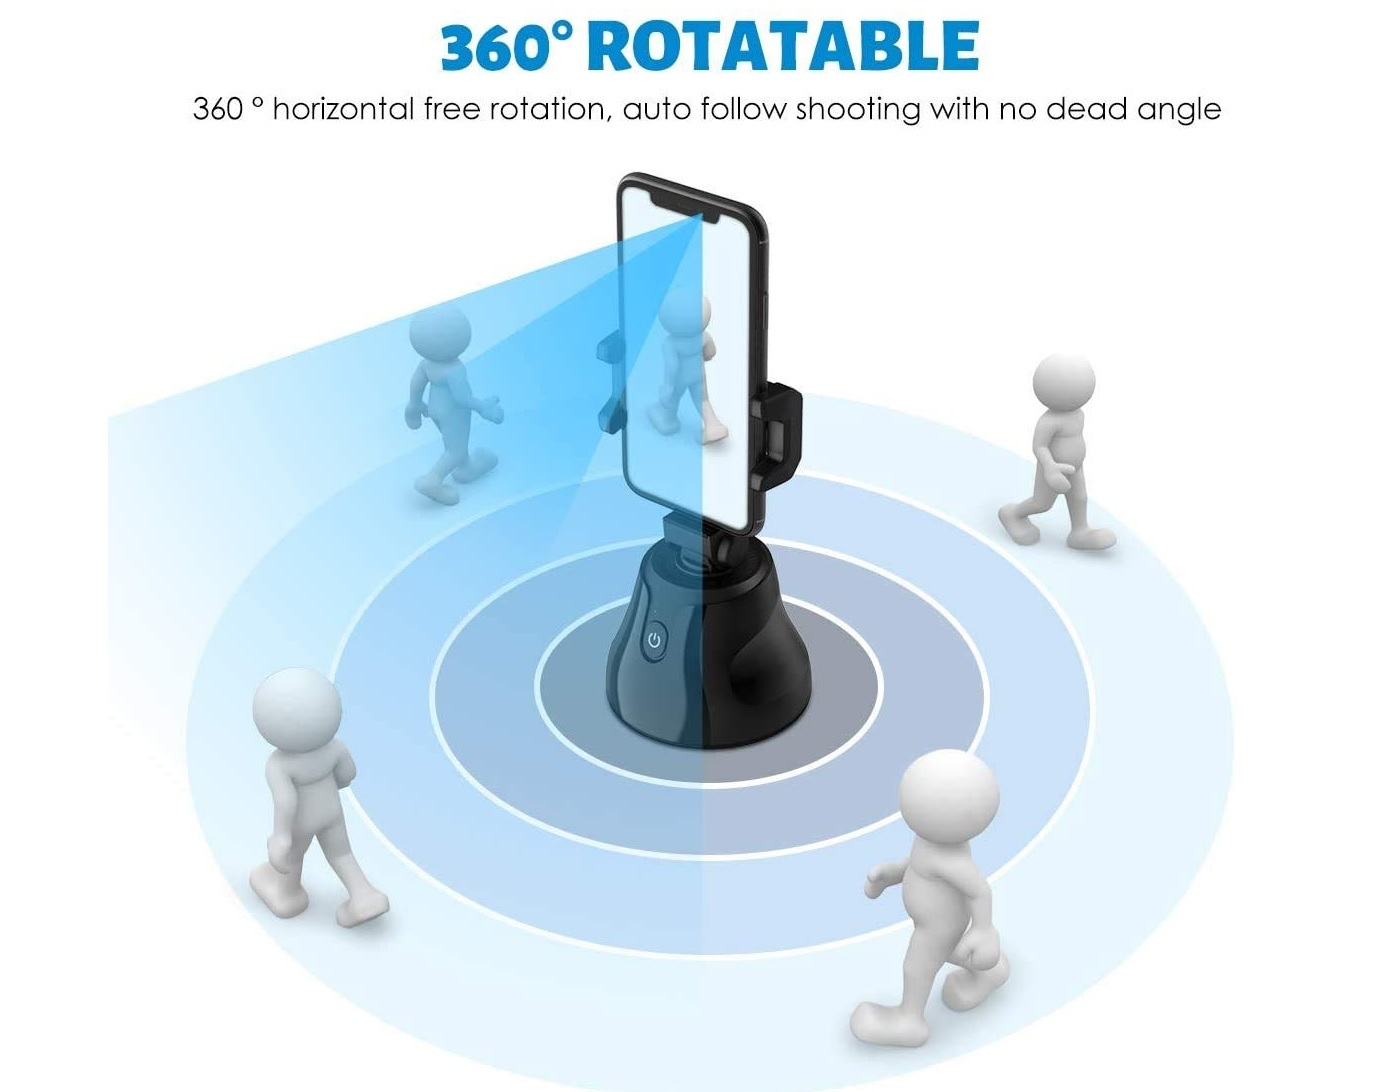 Selfie 360 Degree Rotation Auto Face Object Tracking